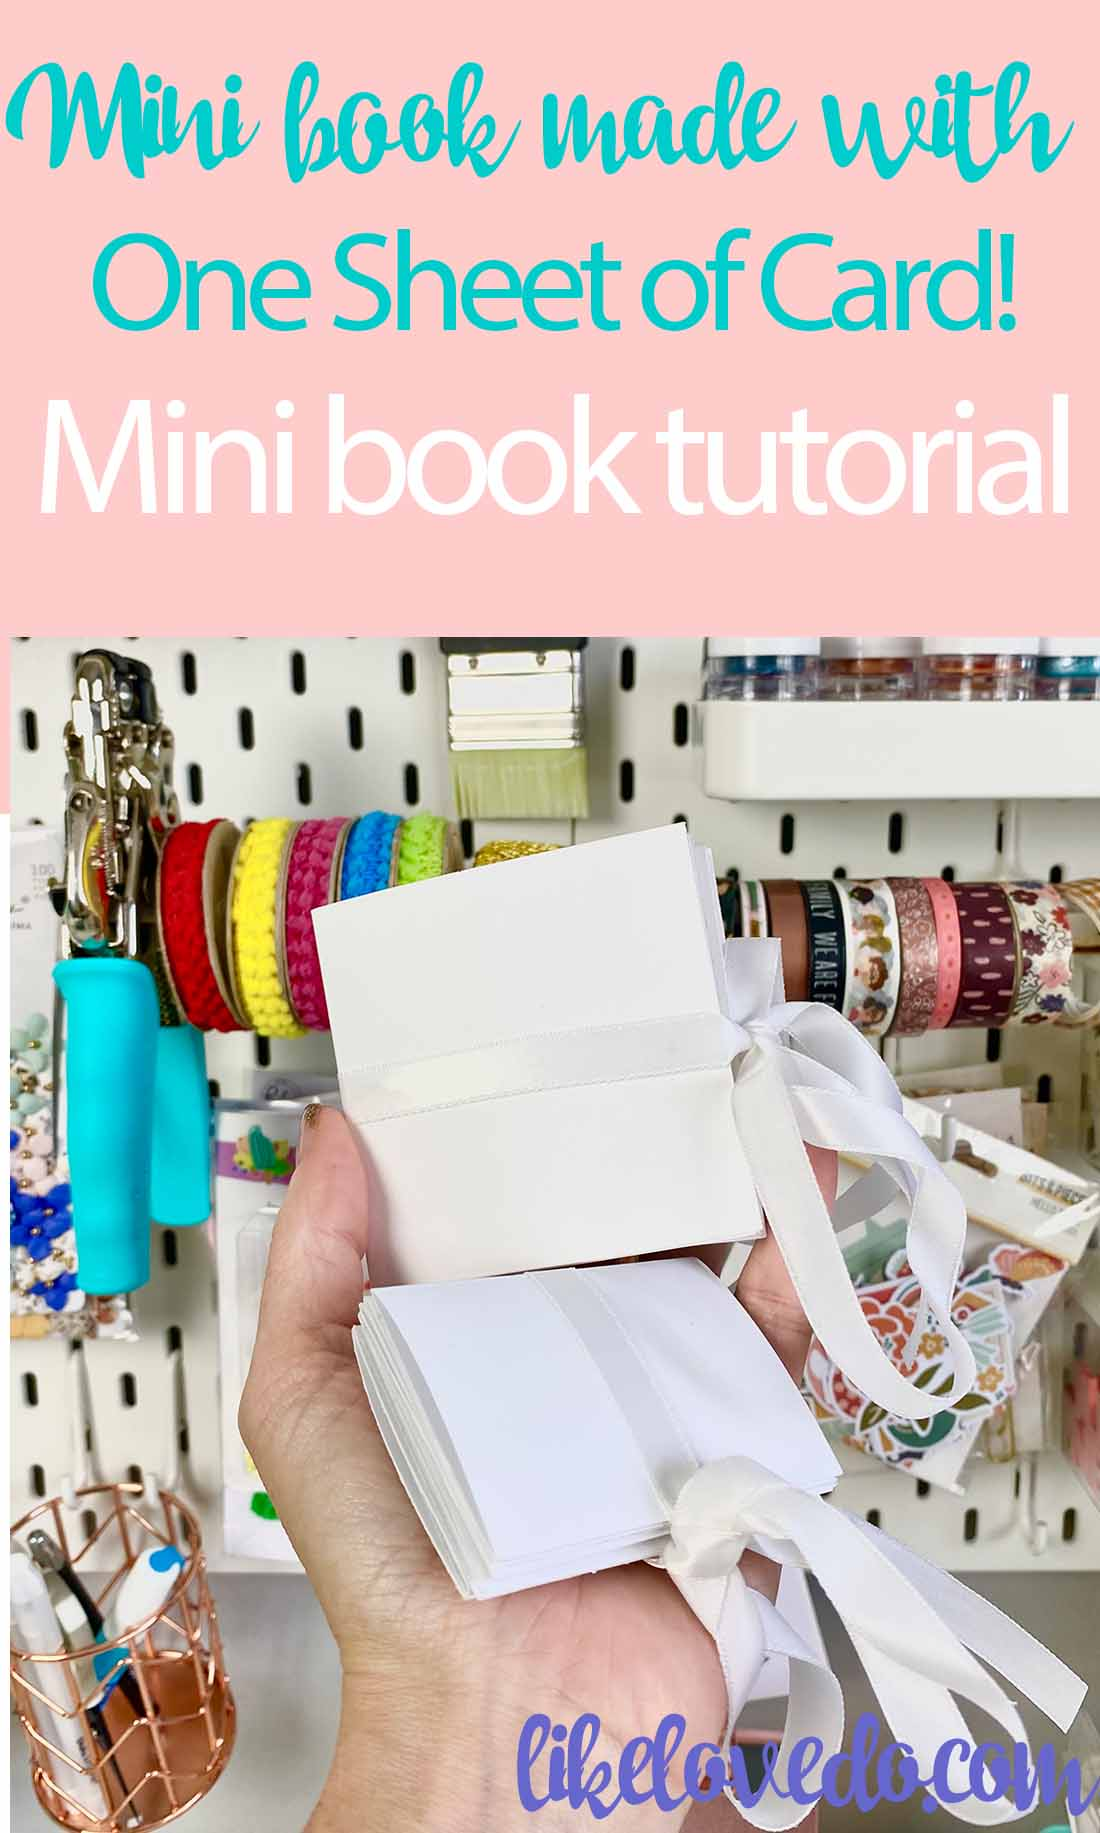 One page mini book tutorial made from one sheet of card A4 and 12 x12